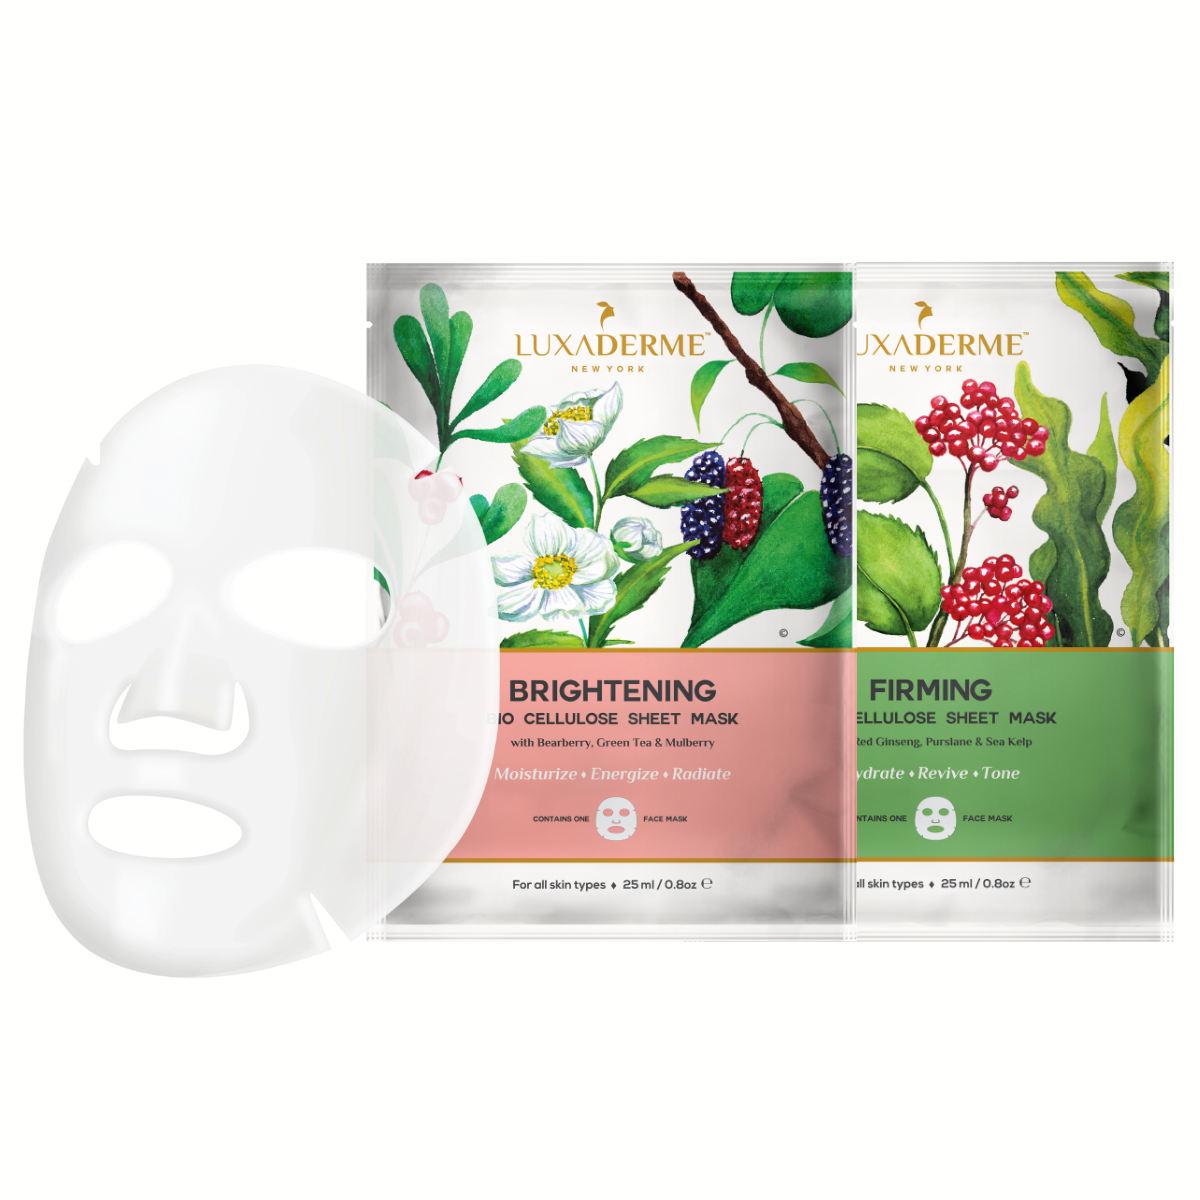 LuxaDerme Brightening & Firming Bio Cellulose Face Sheet Mask Combo (Pack of 2)